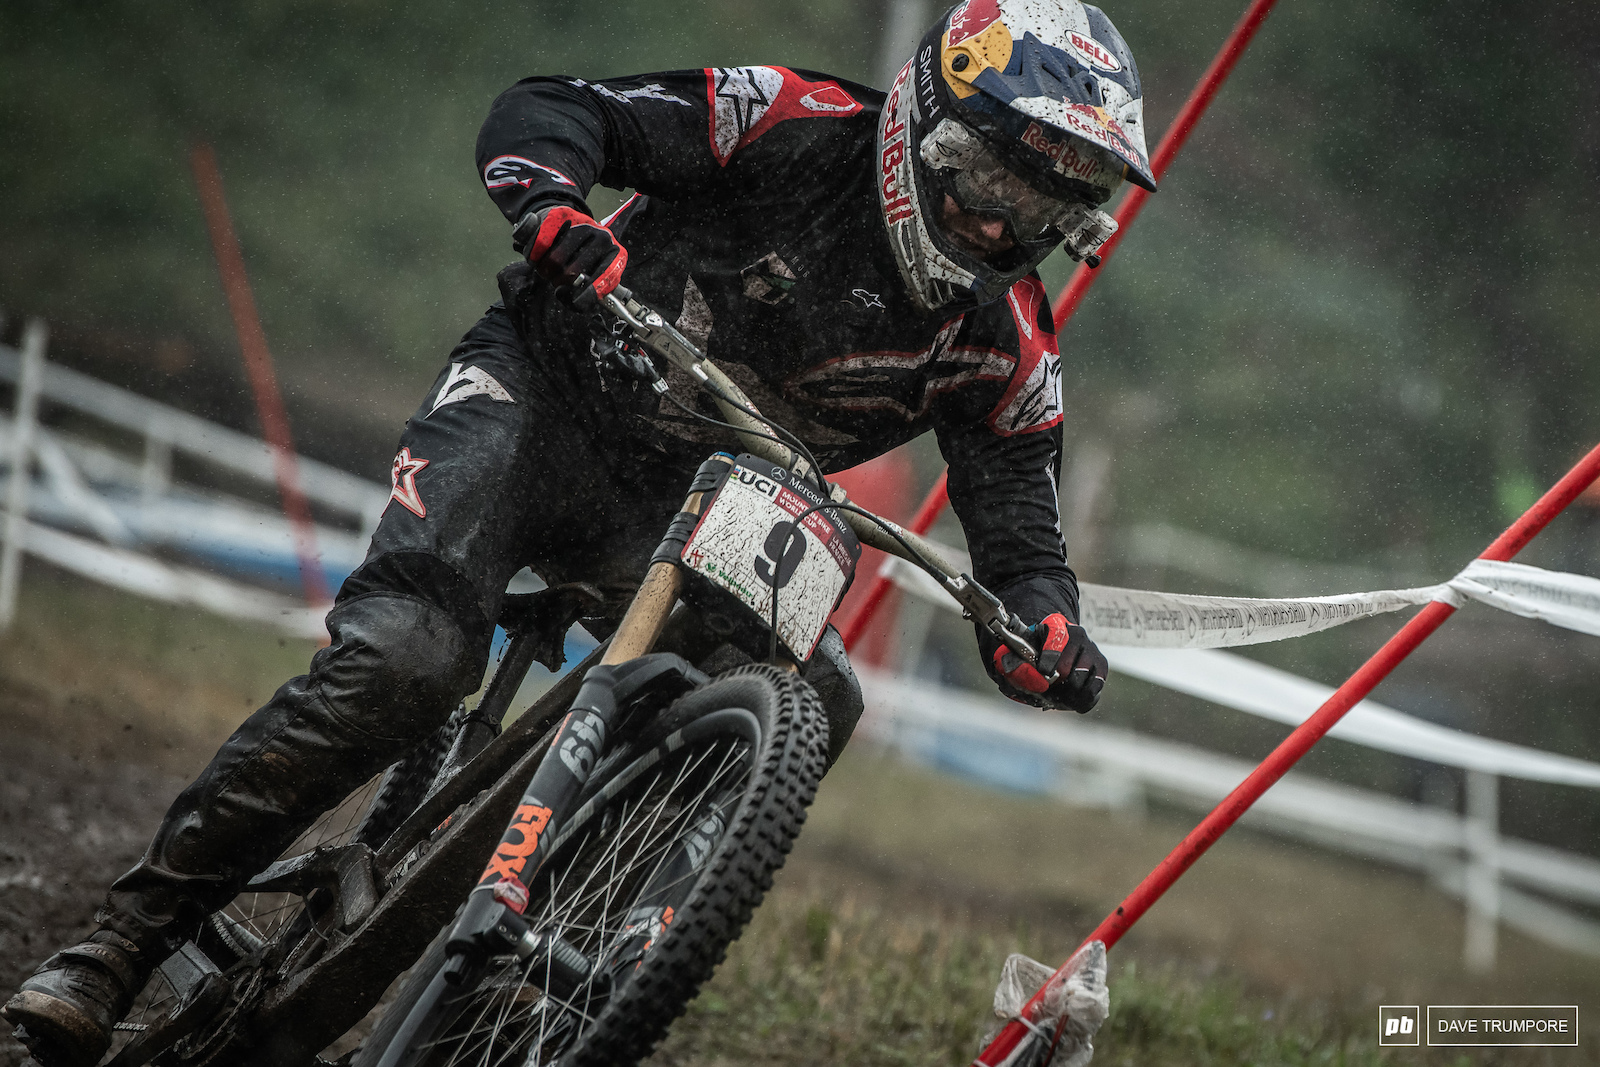 11th for Aaron Gwin in his first World Cup race since since Leogang.